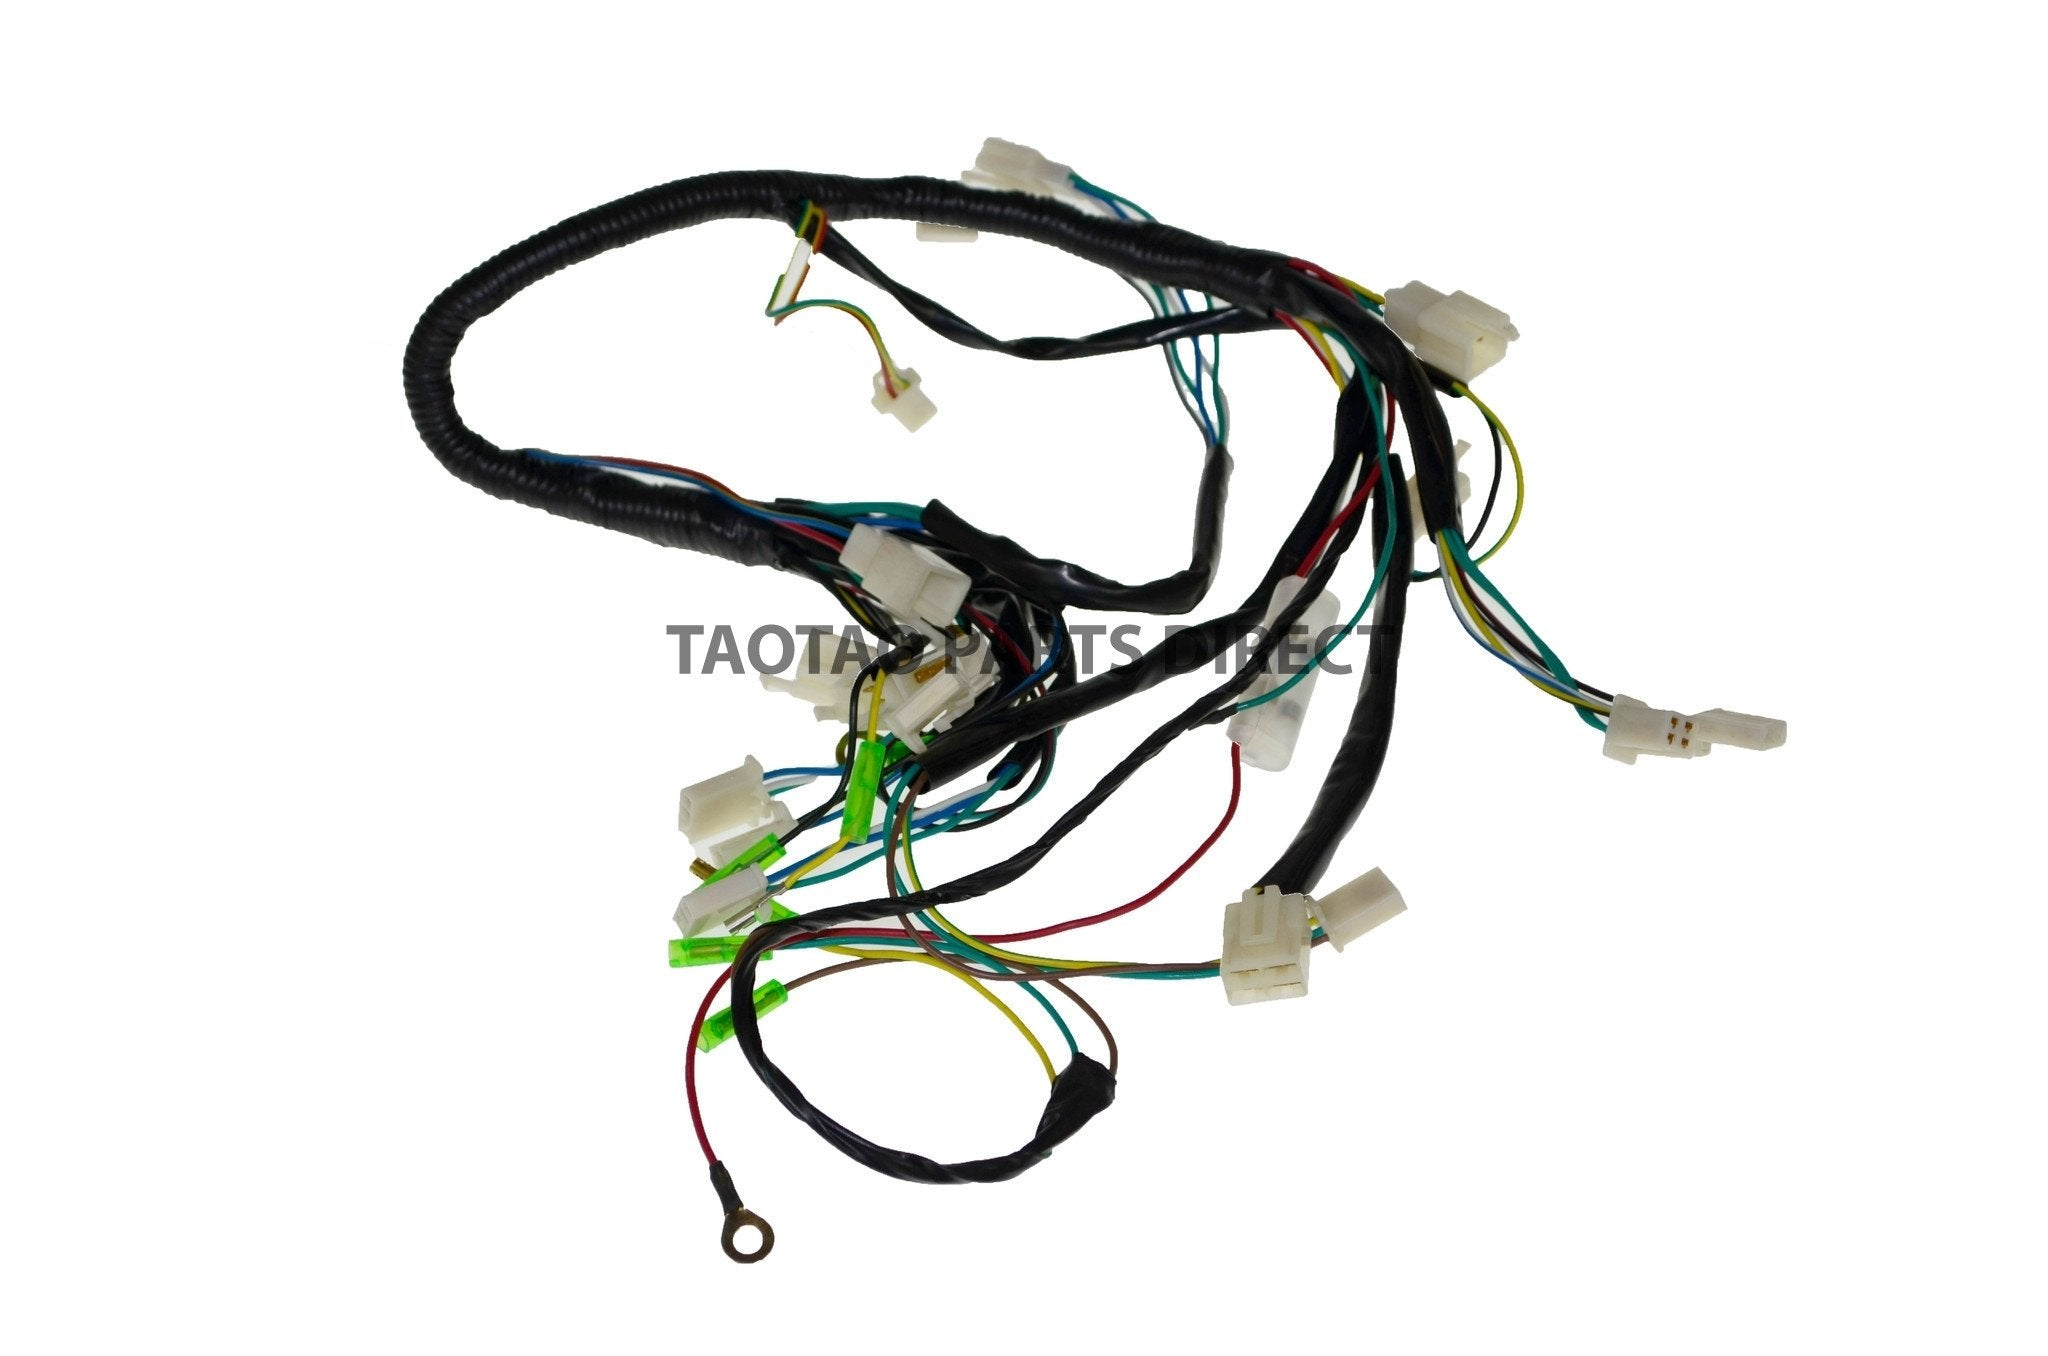 ATA125F1 Wire Harness #7 - TaoTaoPartsDirect.com